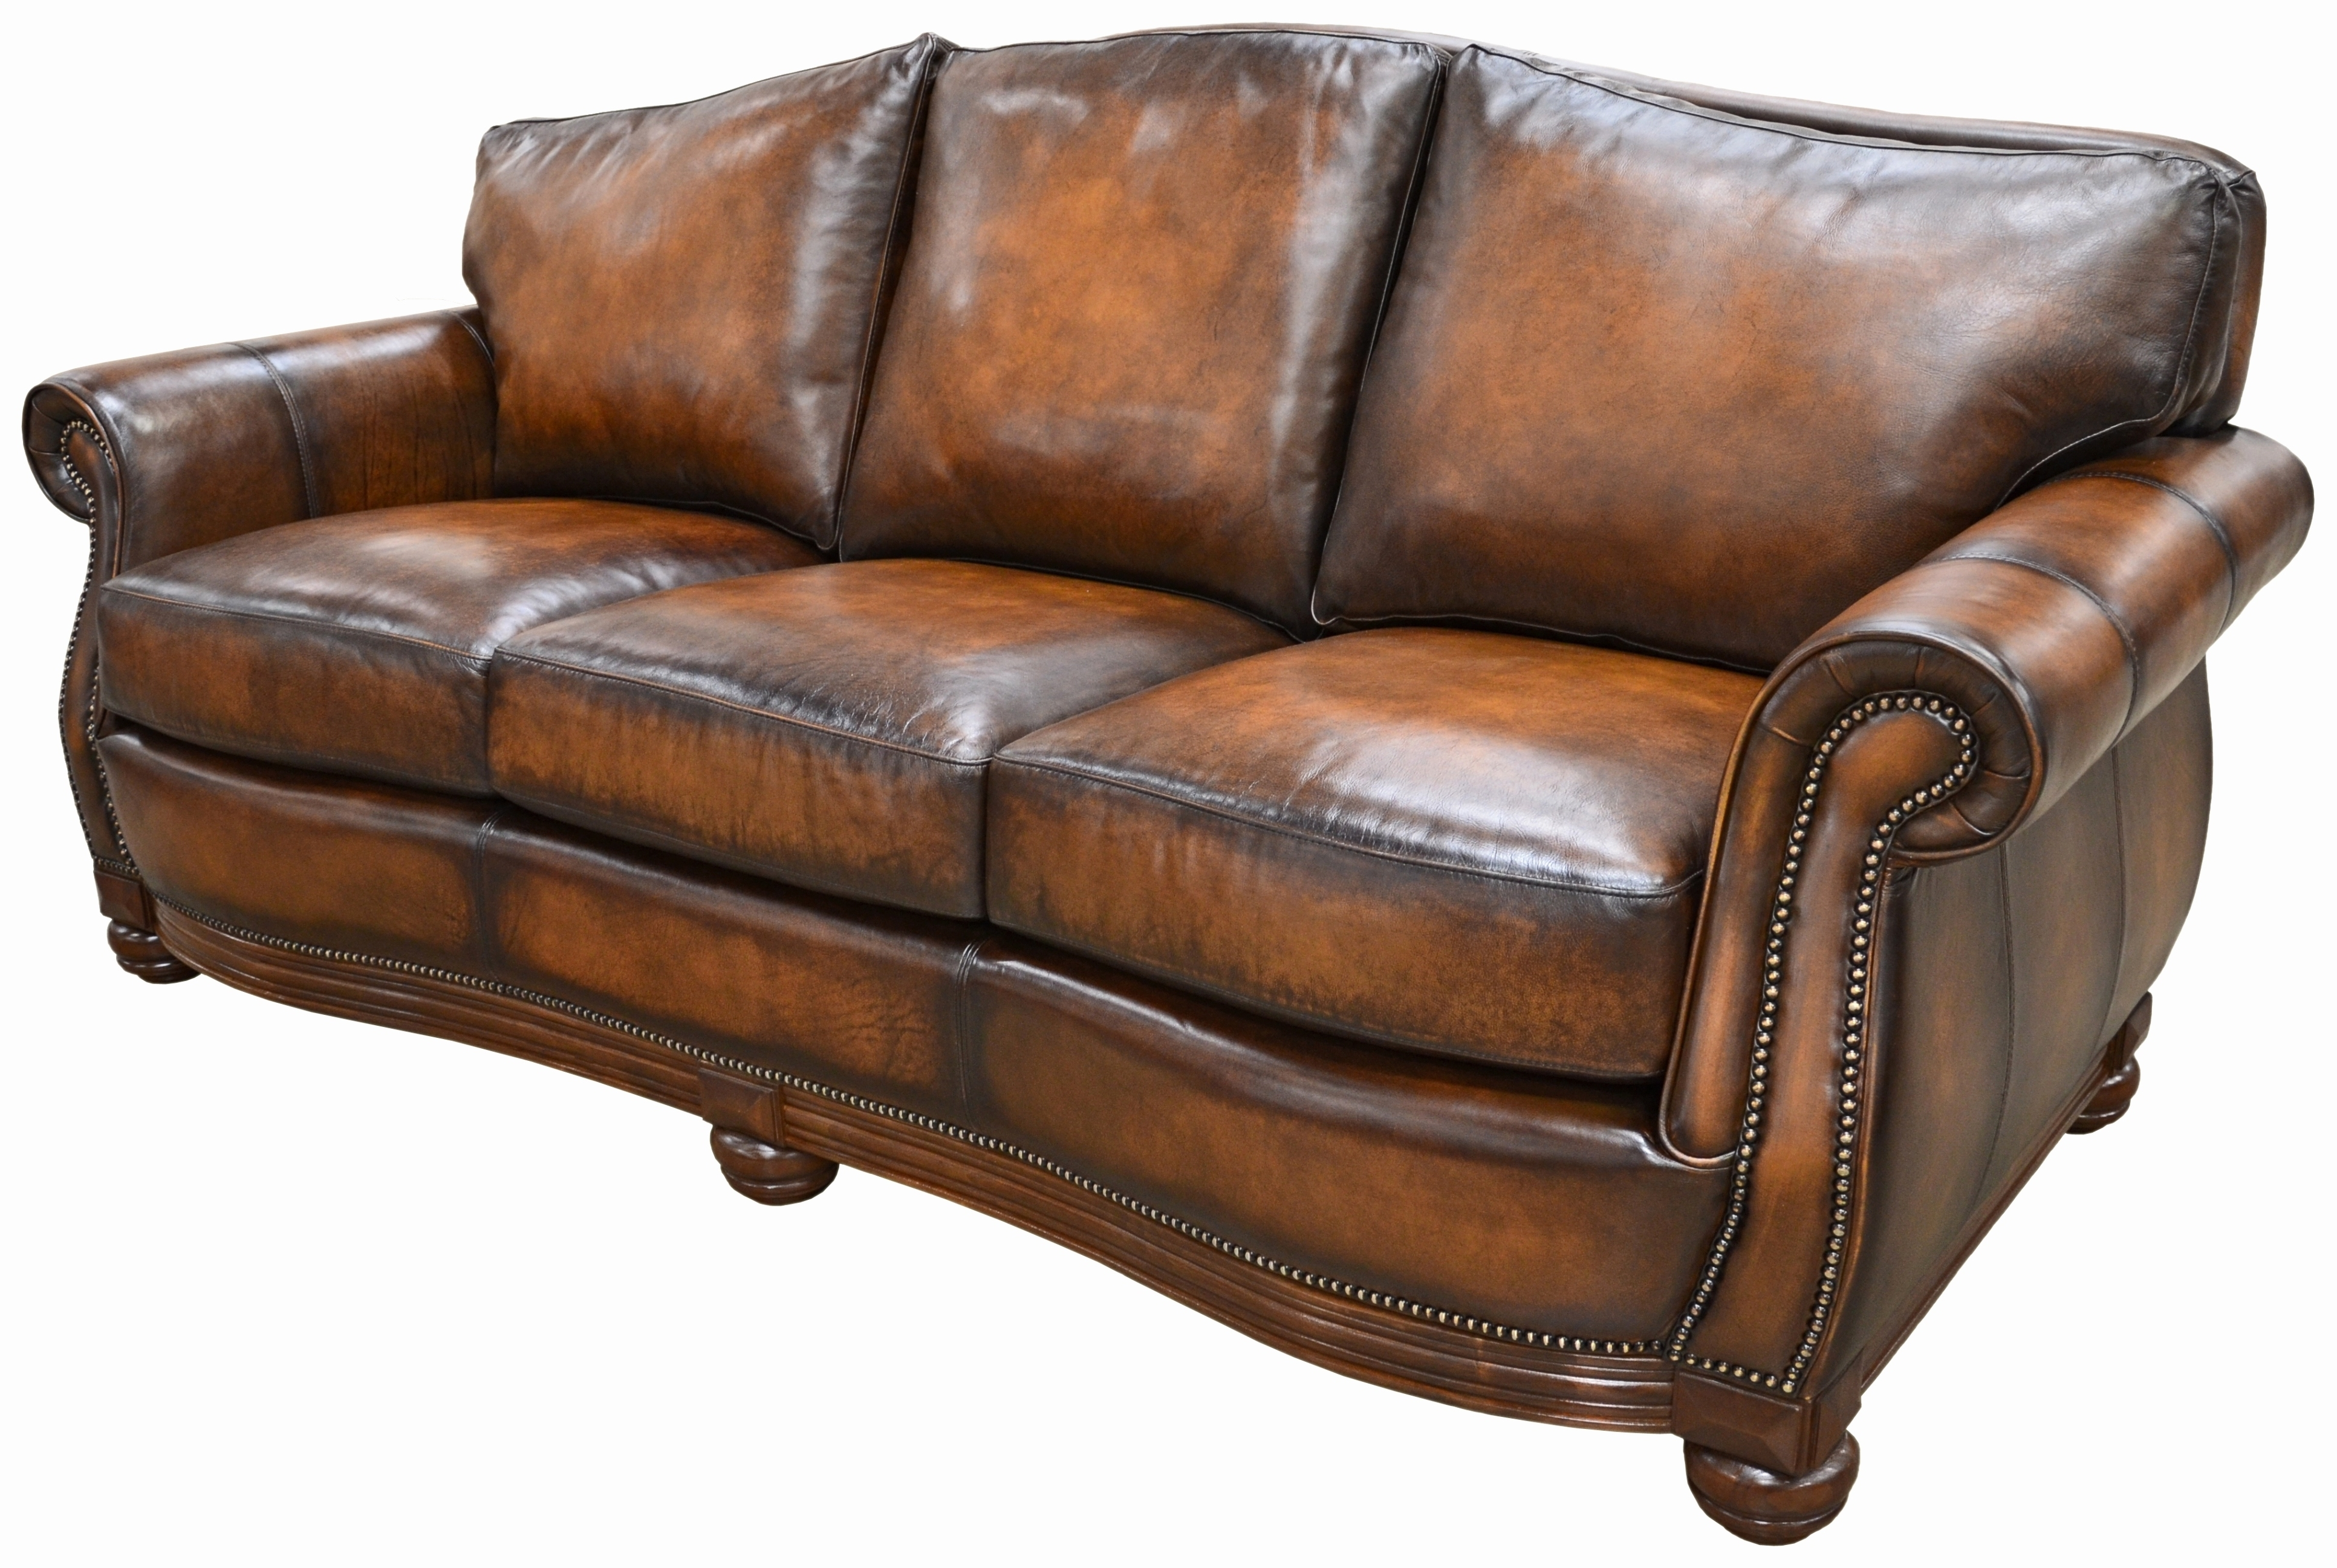 Beautiful Full Grain Leather Sectional 2018 – Couches And Sofas Ideas Within Preferred Full Grain Leather Sofas (View 4 of 20)